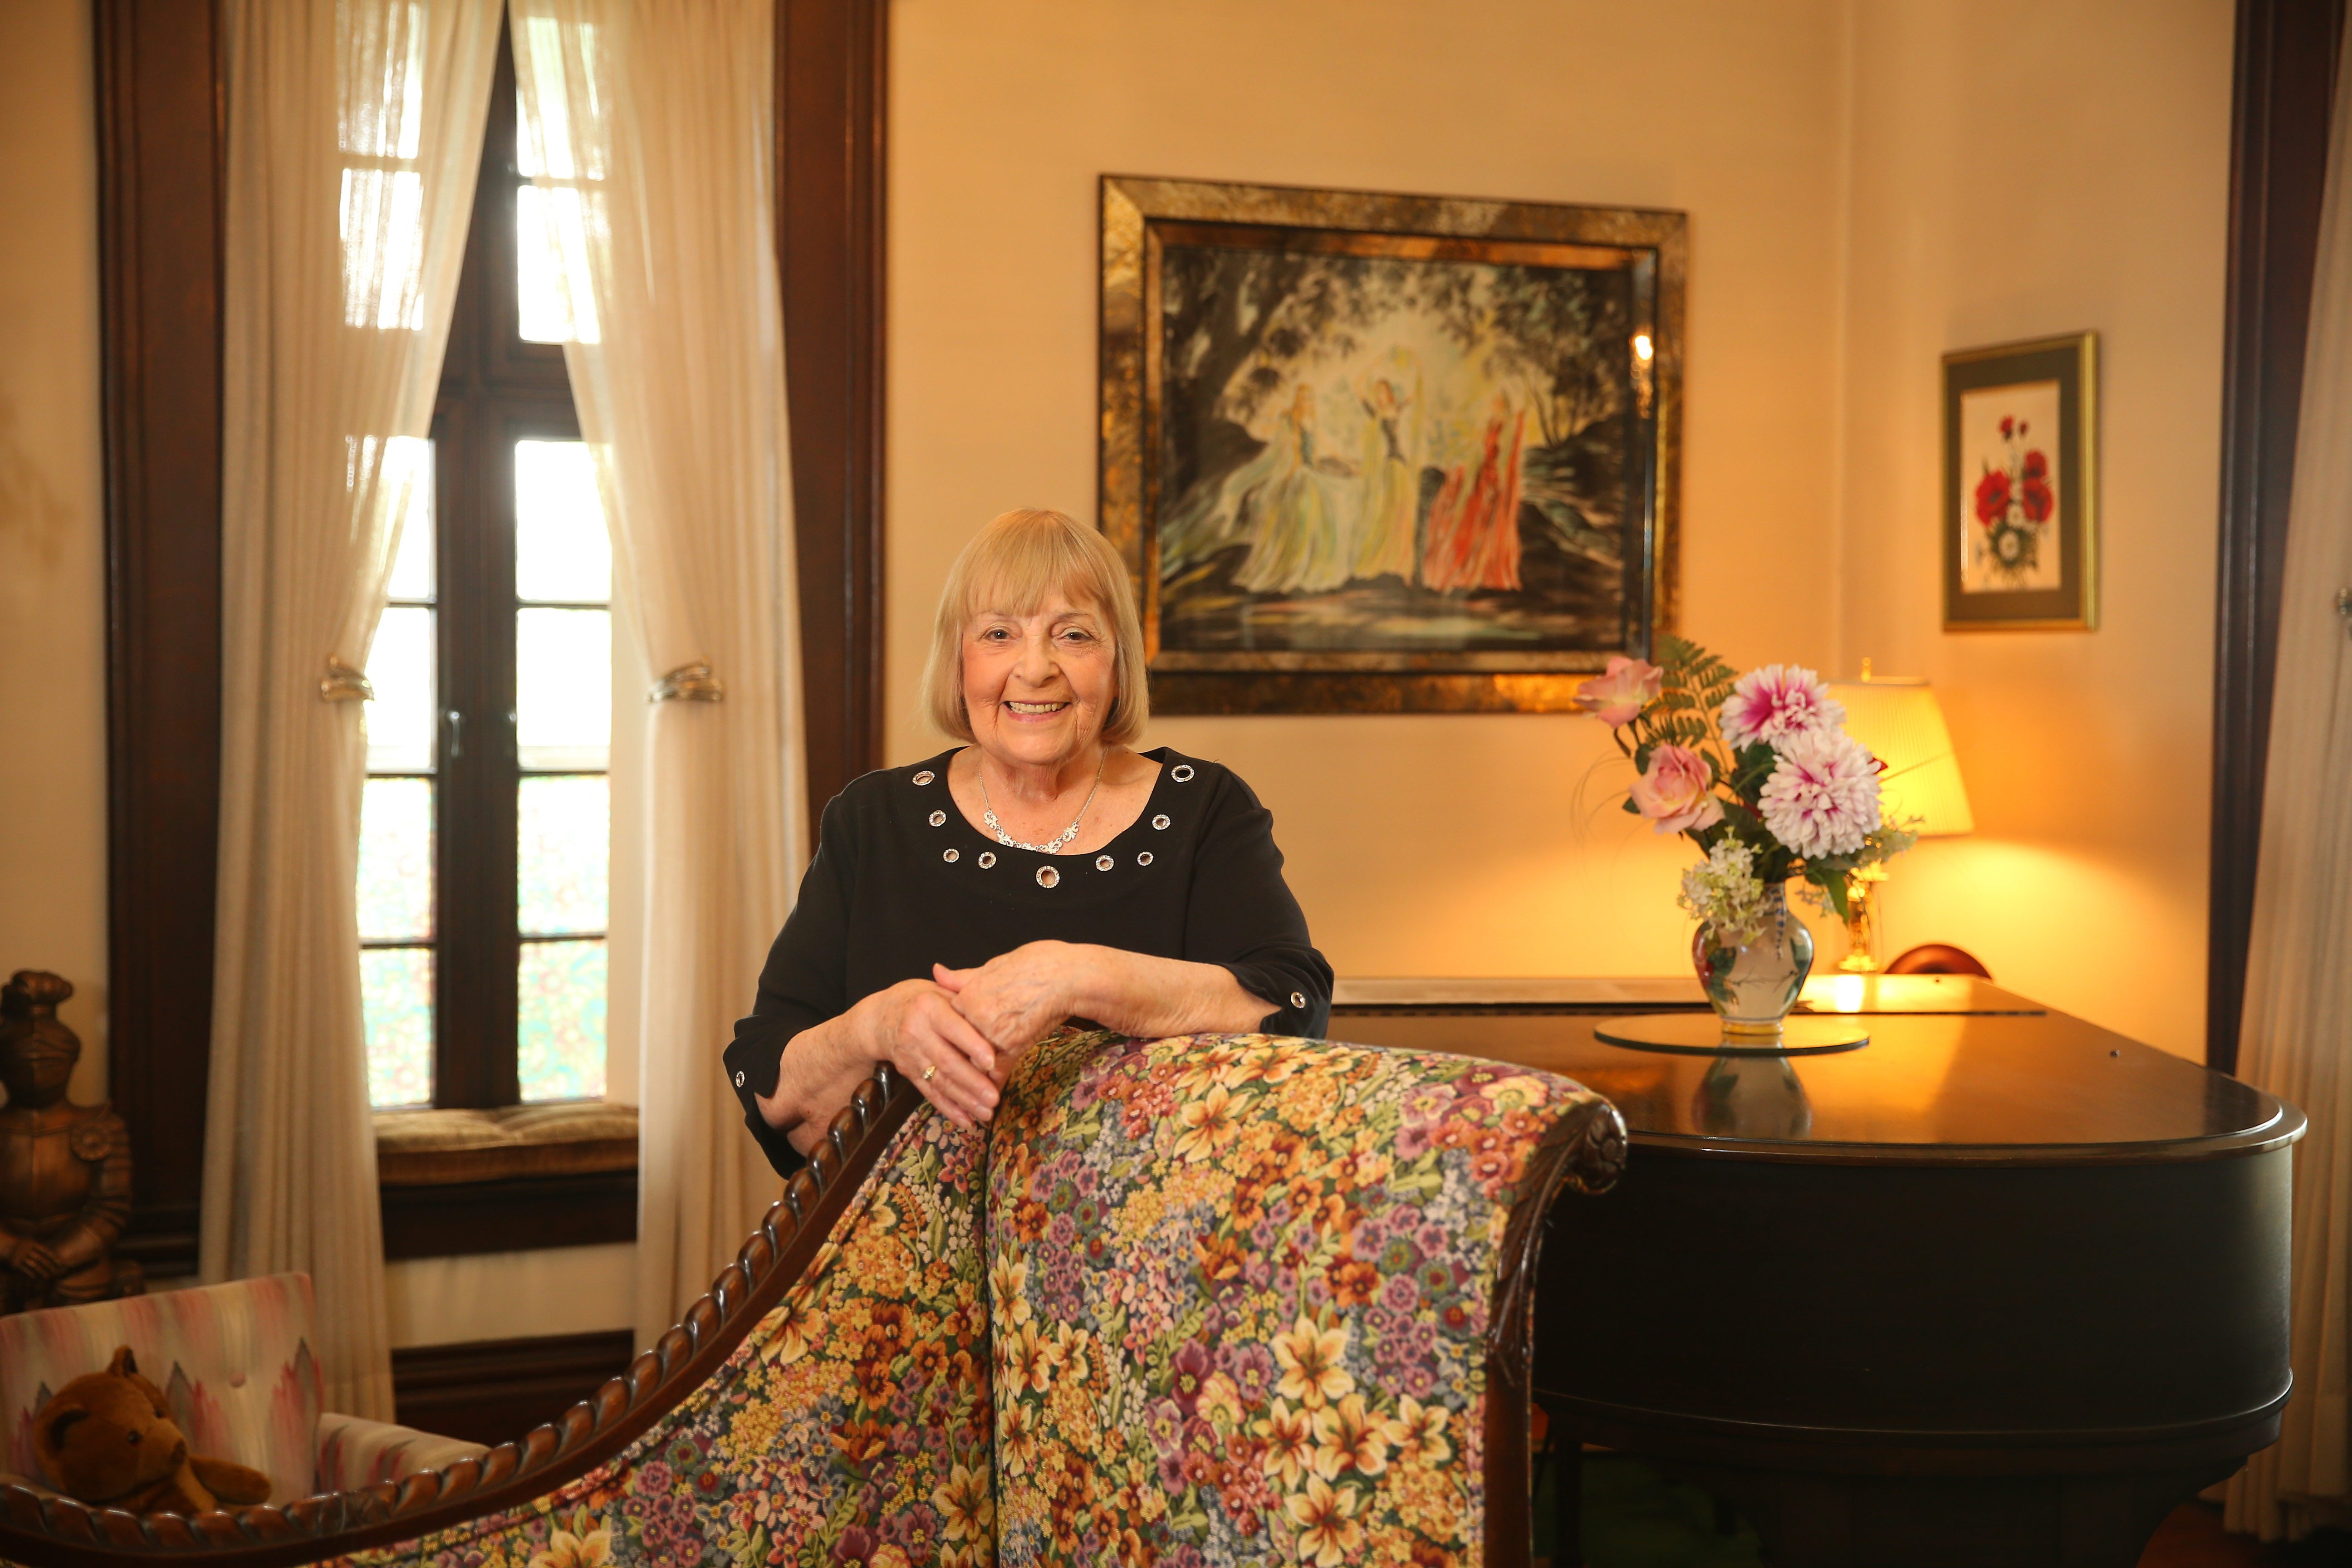 Bed and breakfast owner Virginia Celenza enjoys meeting the visitors who come to stay at the historic Holley-Rankine house on Riverside Drive in Niagara Falls.